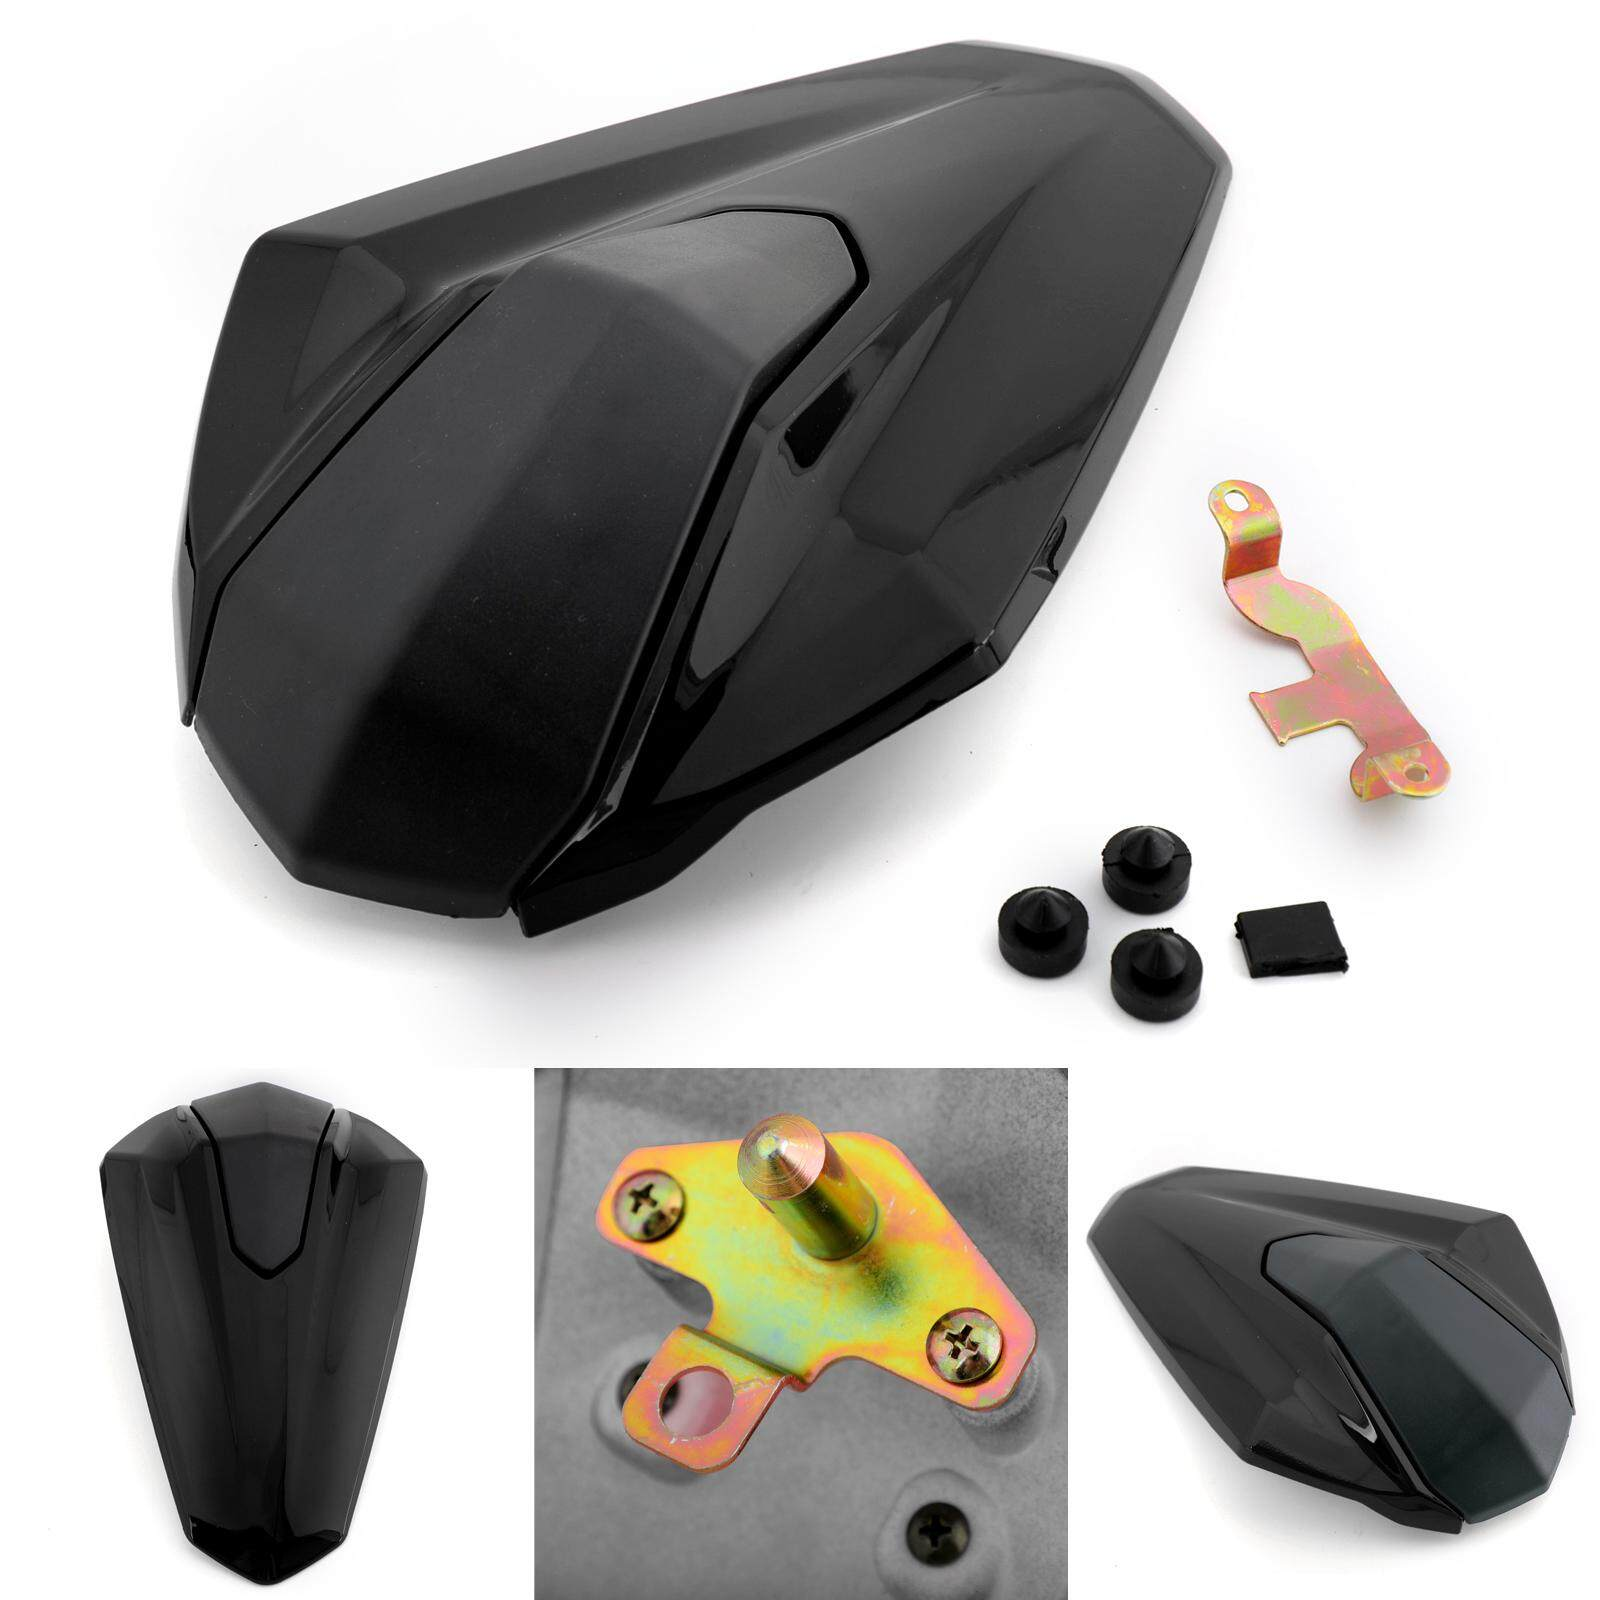 Black 17-18 Rear Seat Fairing Cover Cowl ABS plastic for Kawasaki Z900 ABS